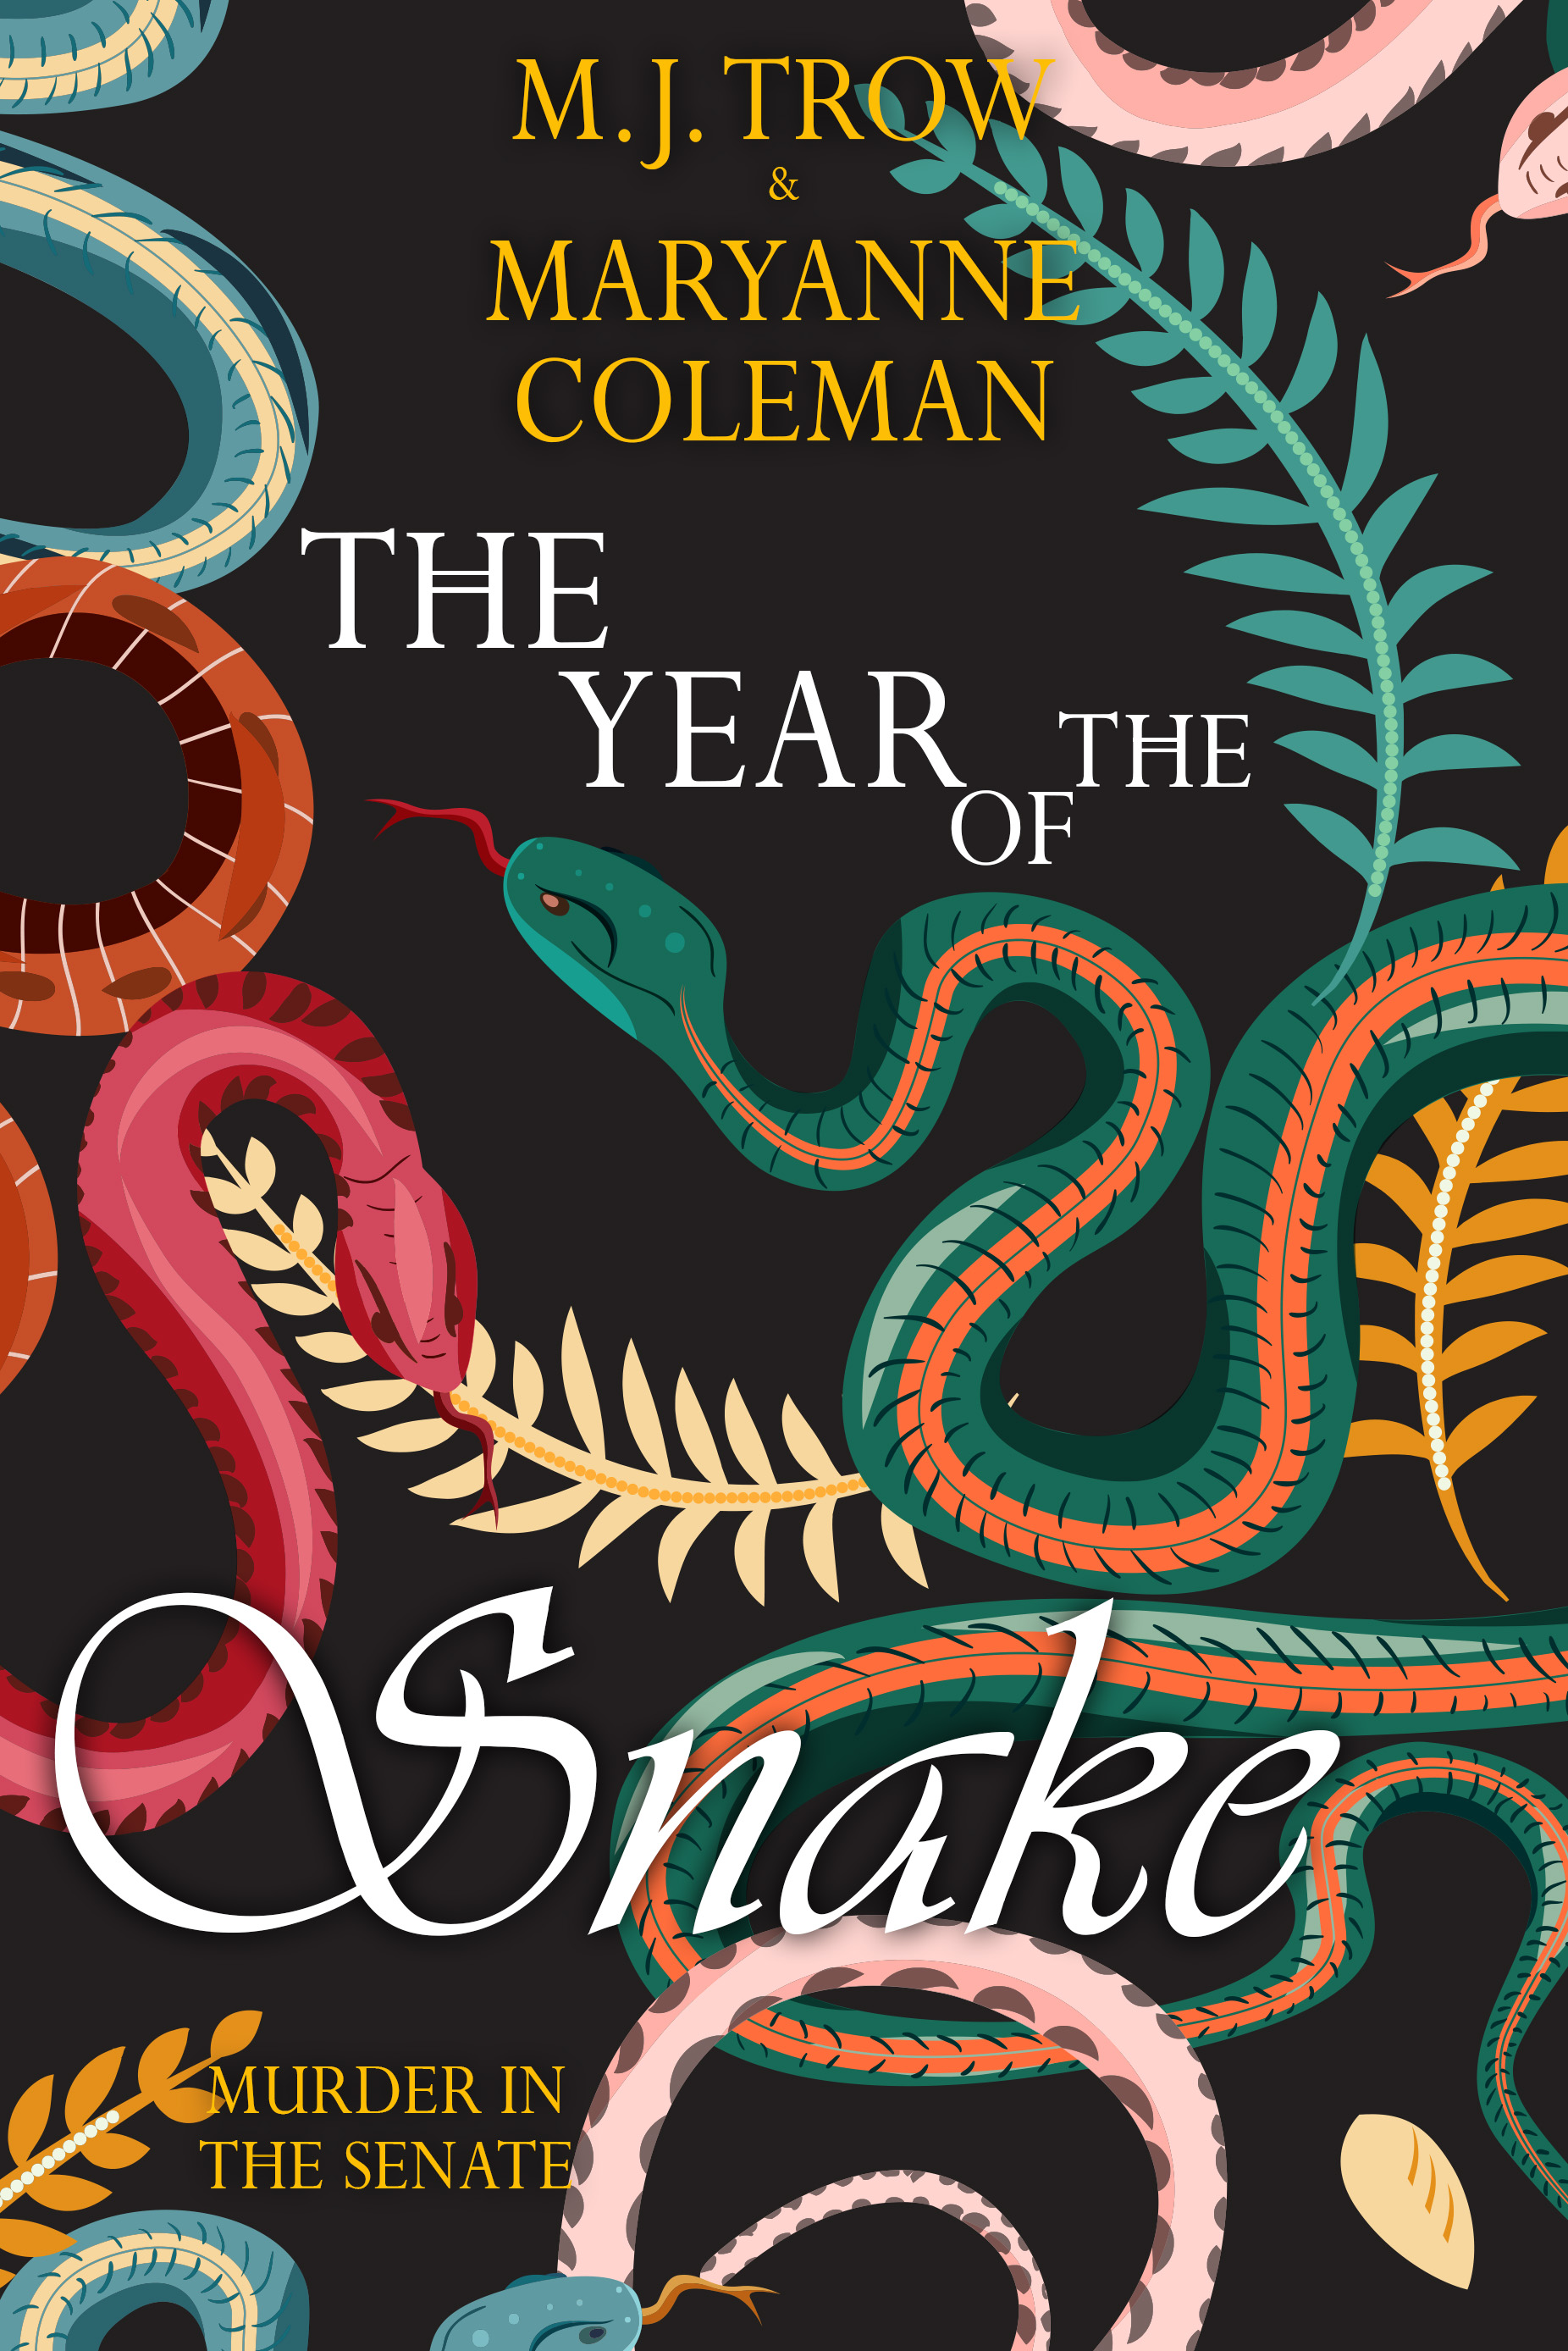 The year of the snake - bibliophile review